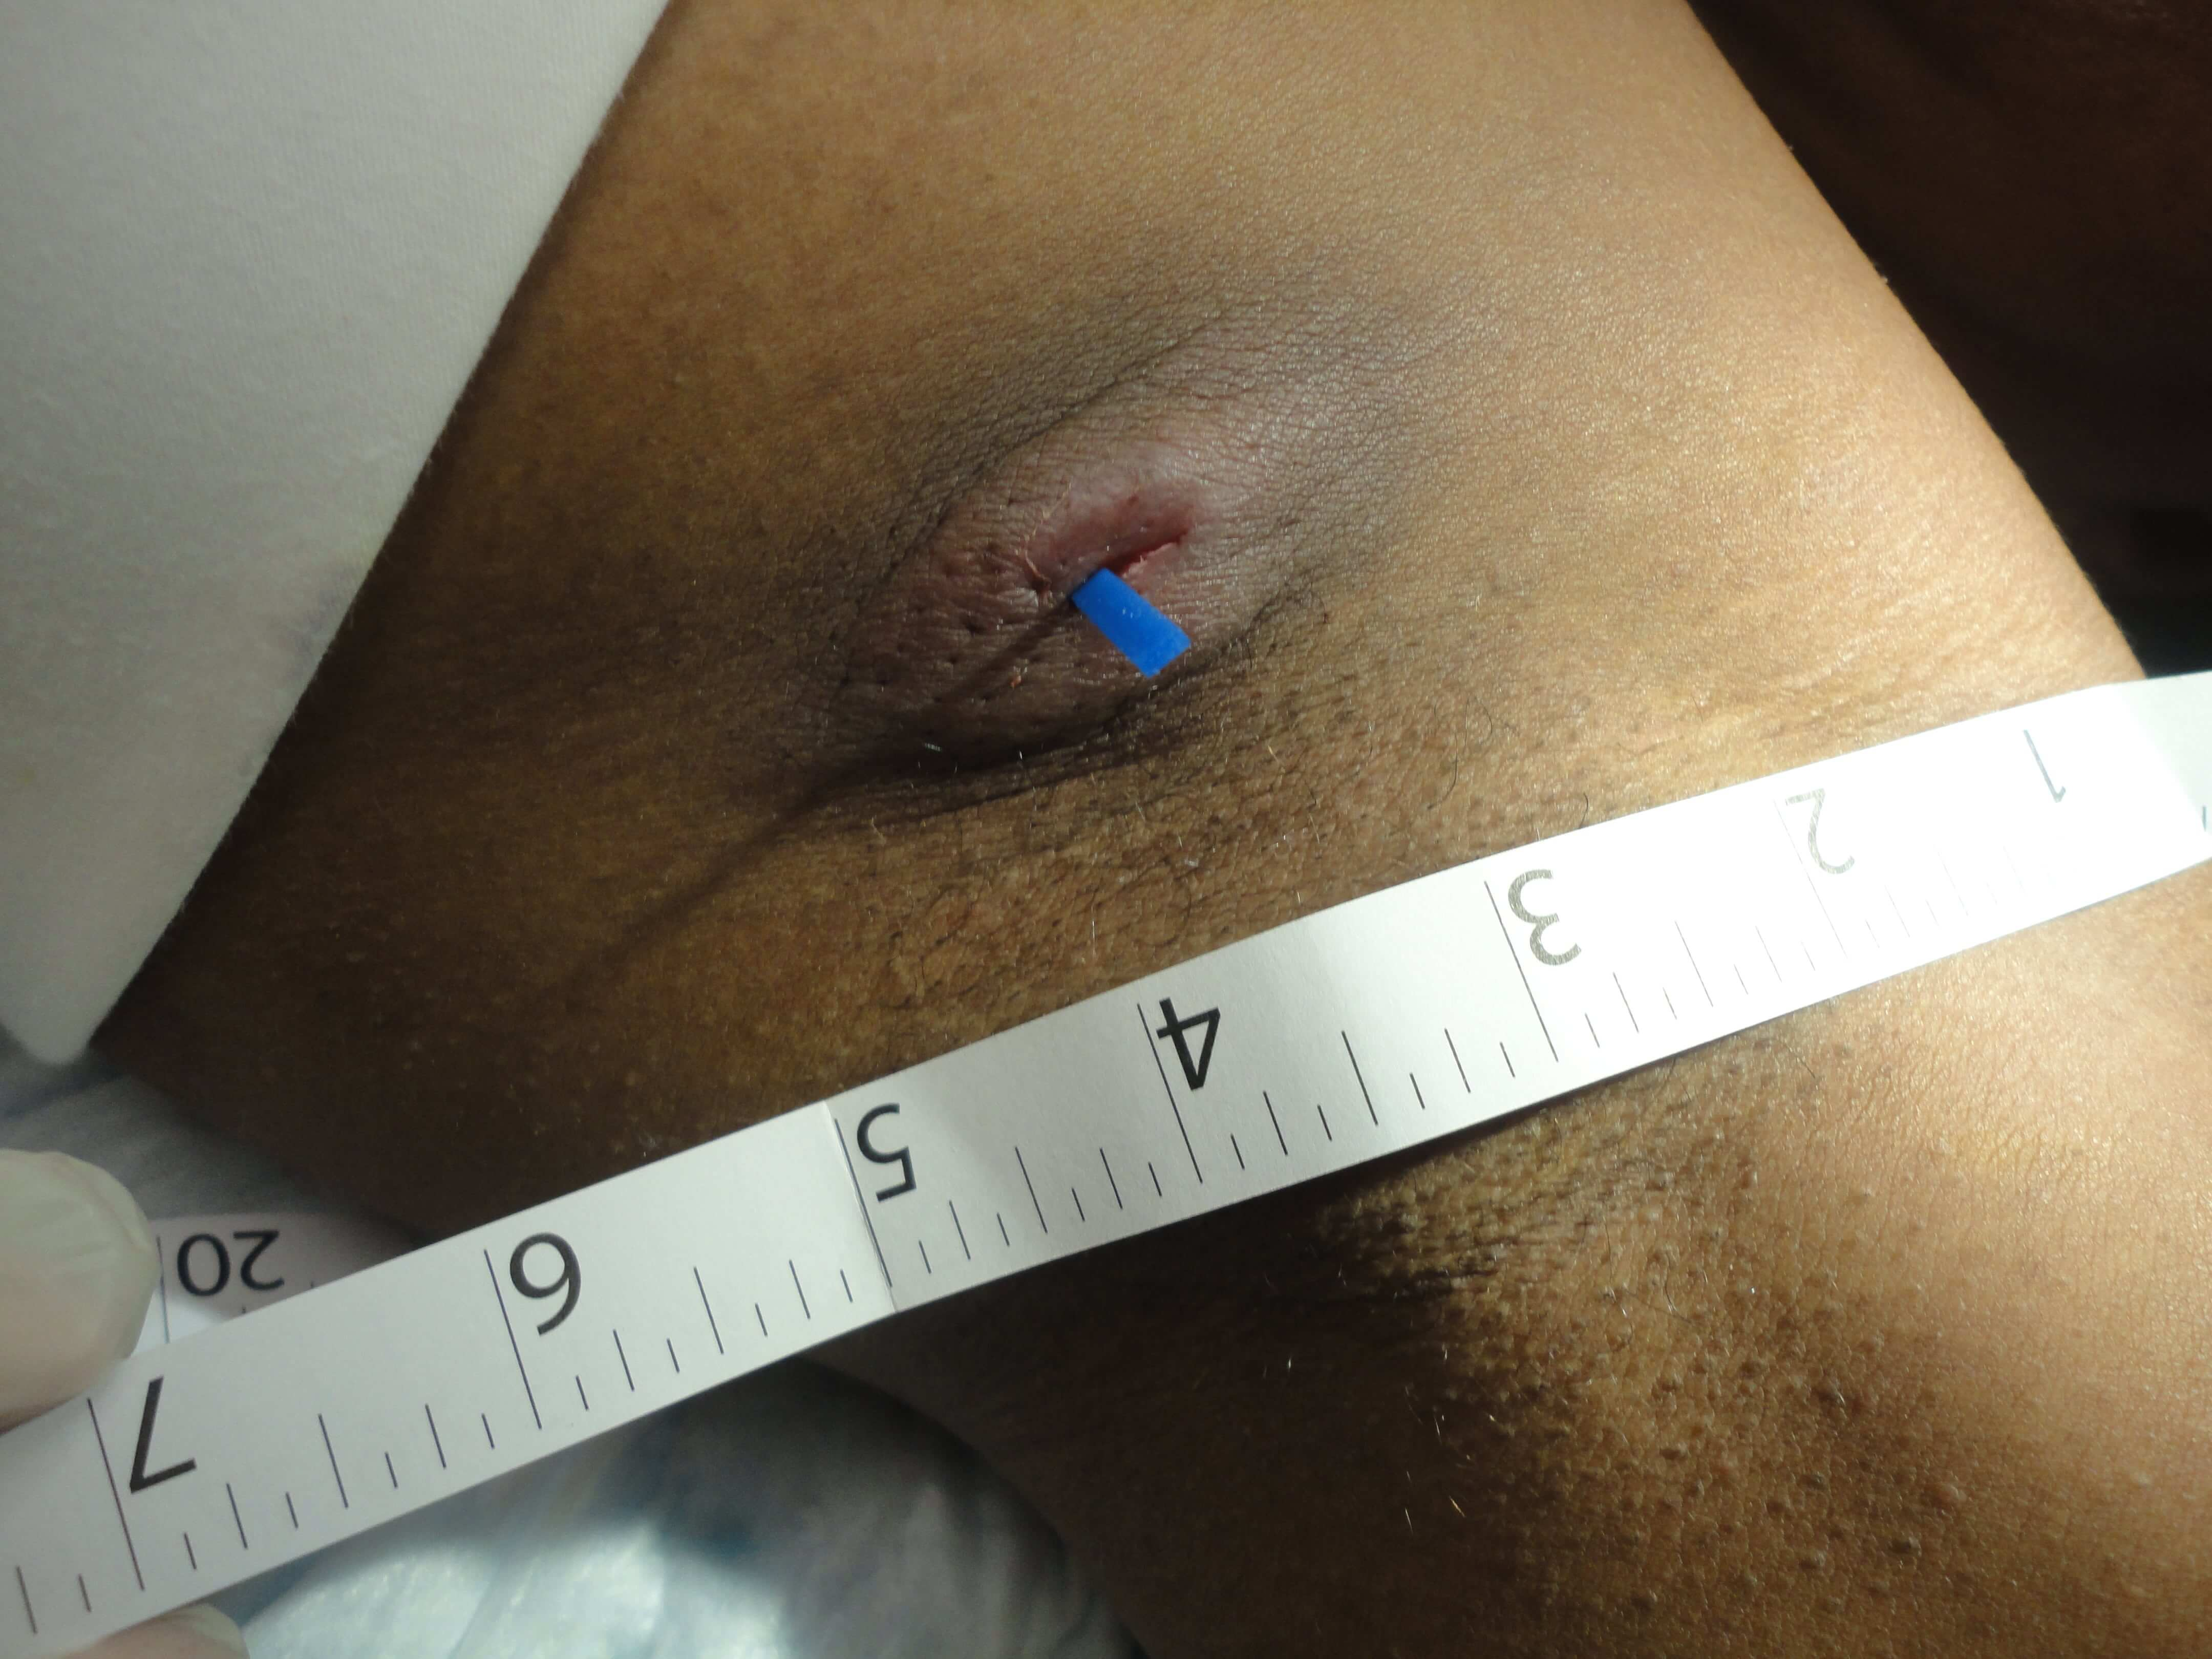 Derma-Stent being used with one incision on the abscess underarm.